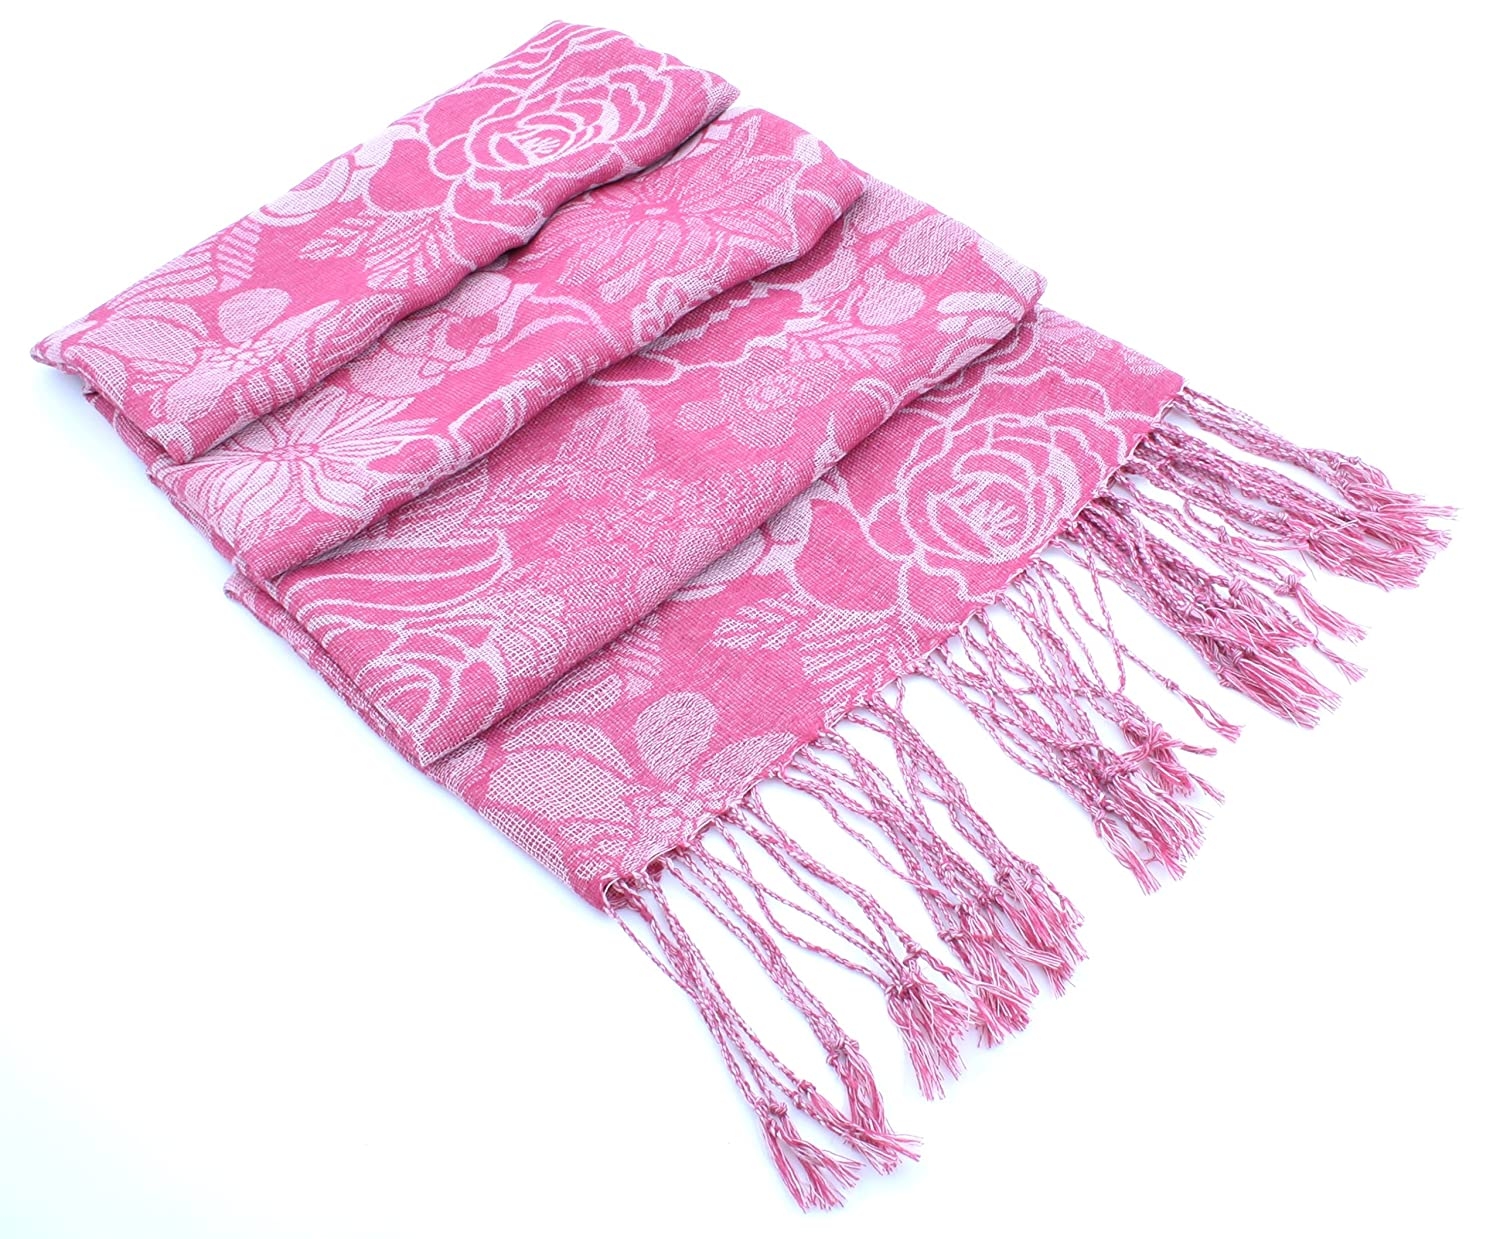 RJM Ladies Knitted Scarf with Metallic Thread